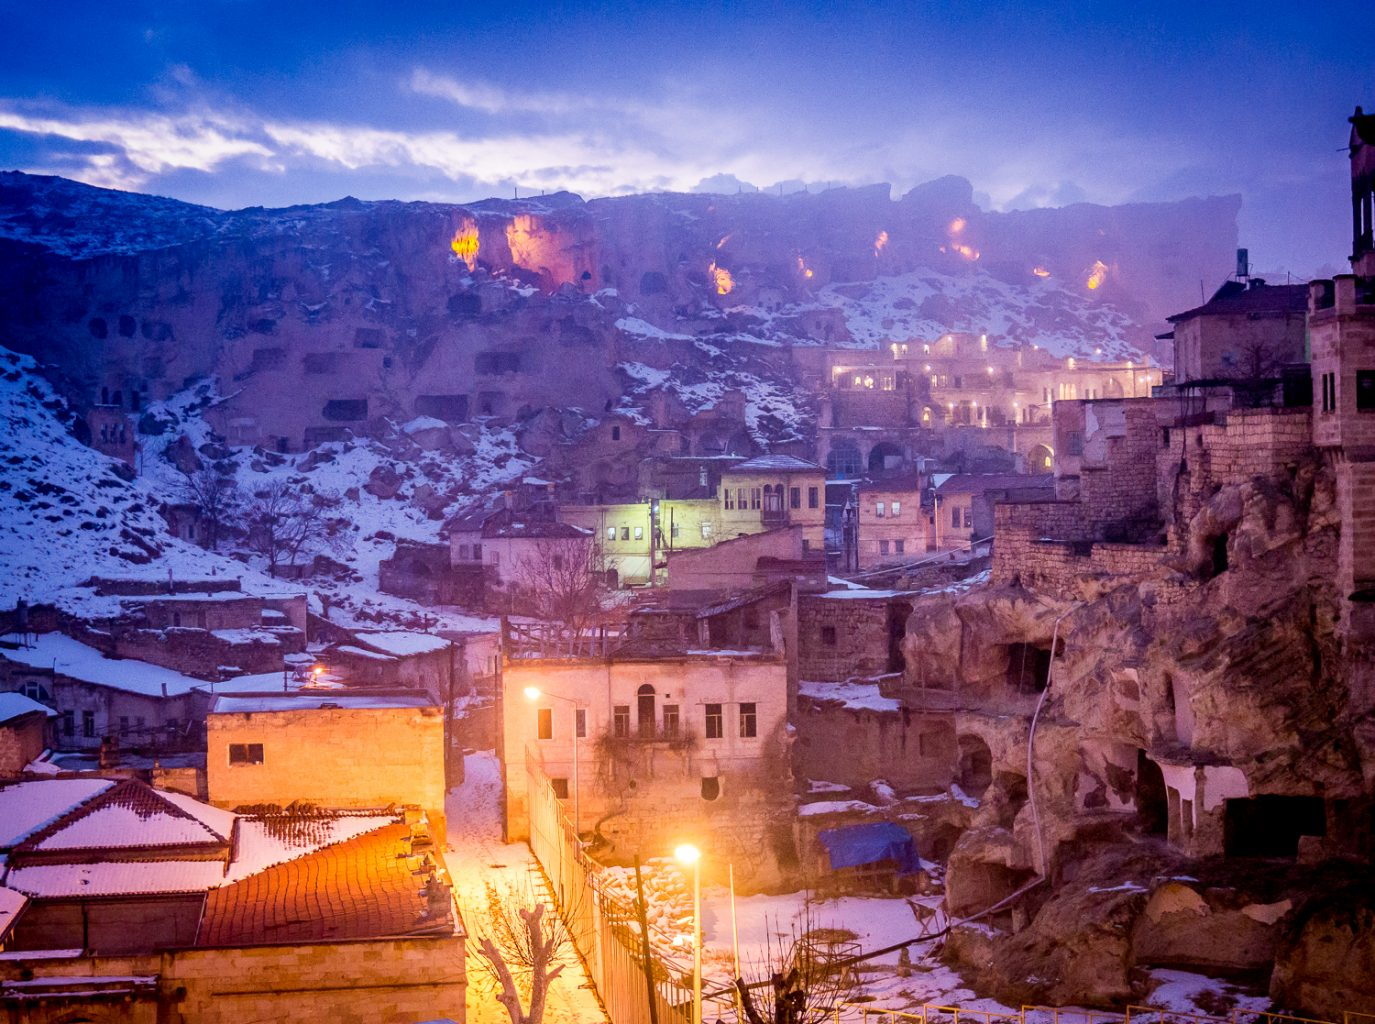 You could die here - Old Urgup, Cappadocia, Turkey